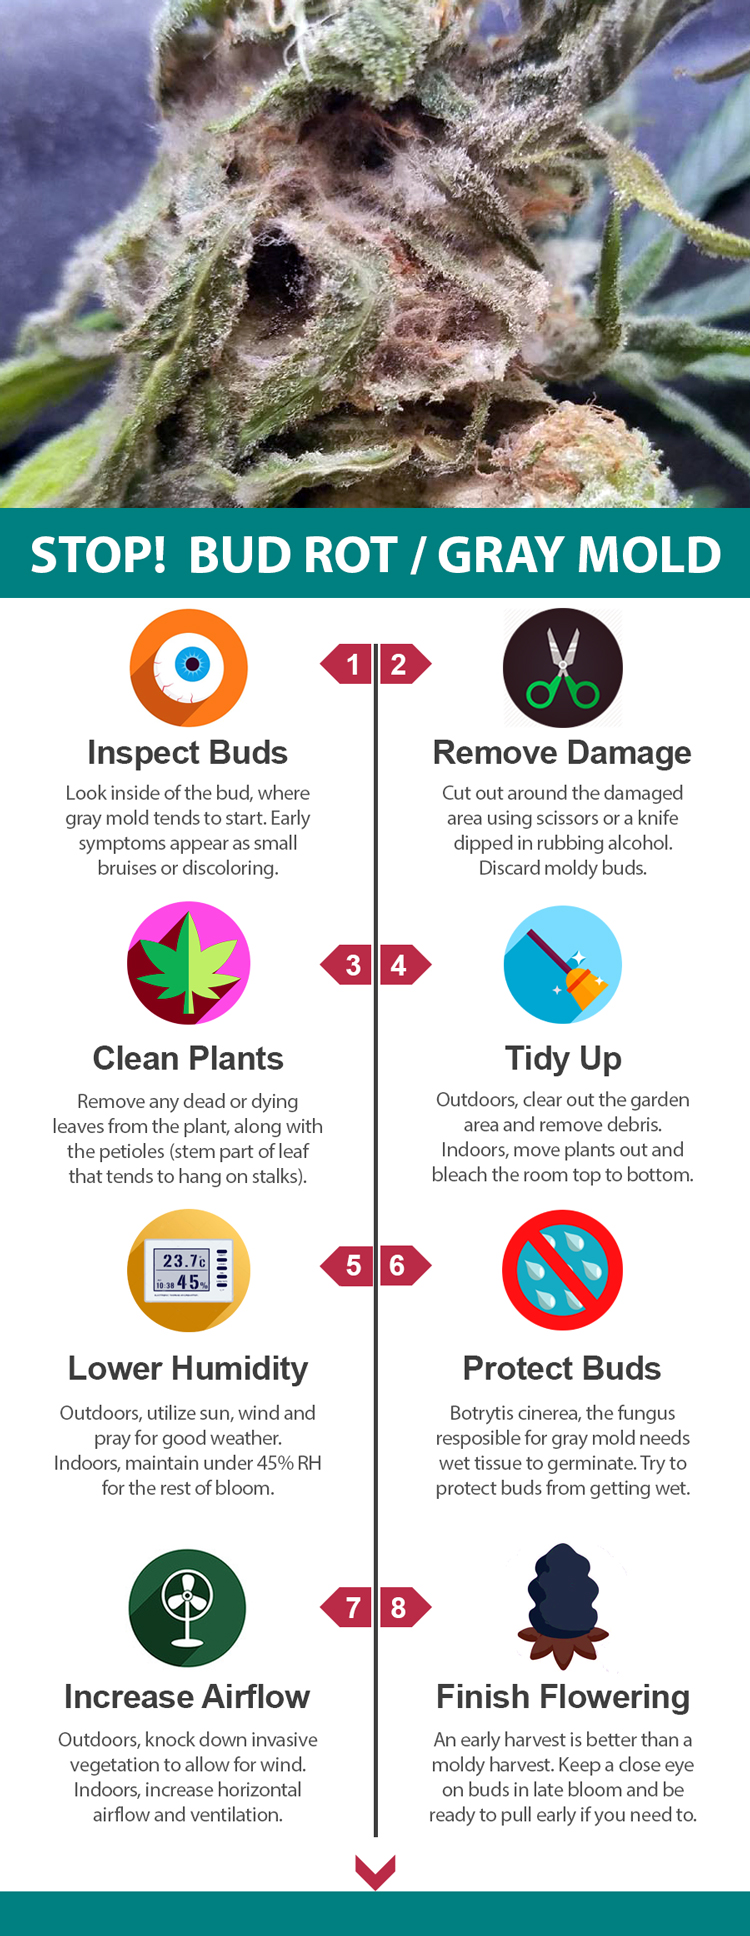 Stop Gray Mold Botrytis Bud Rot: Cannabis Infographic